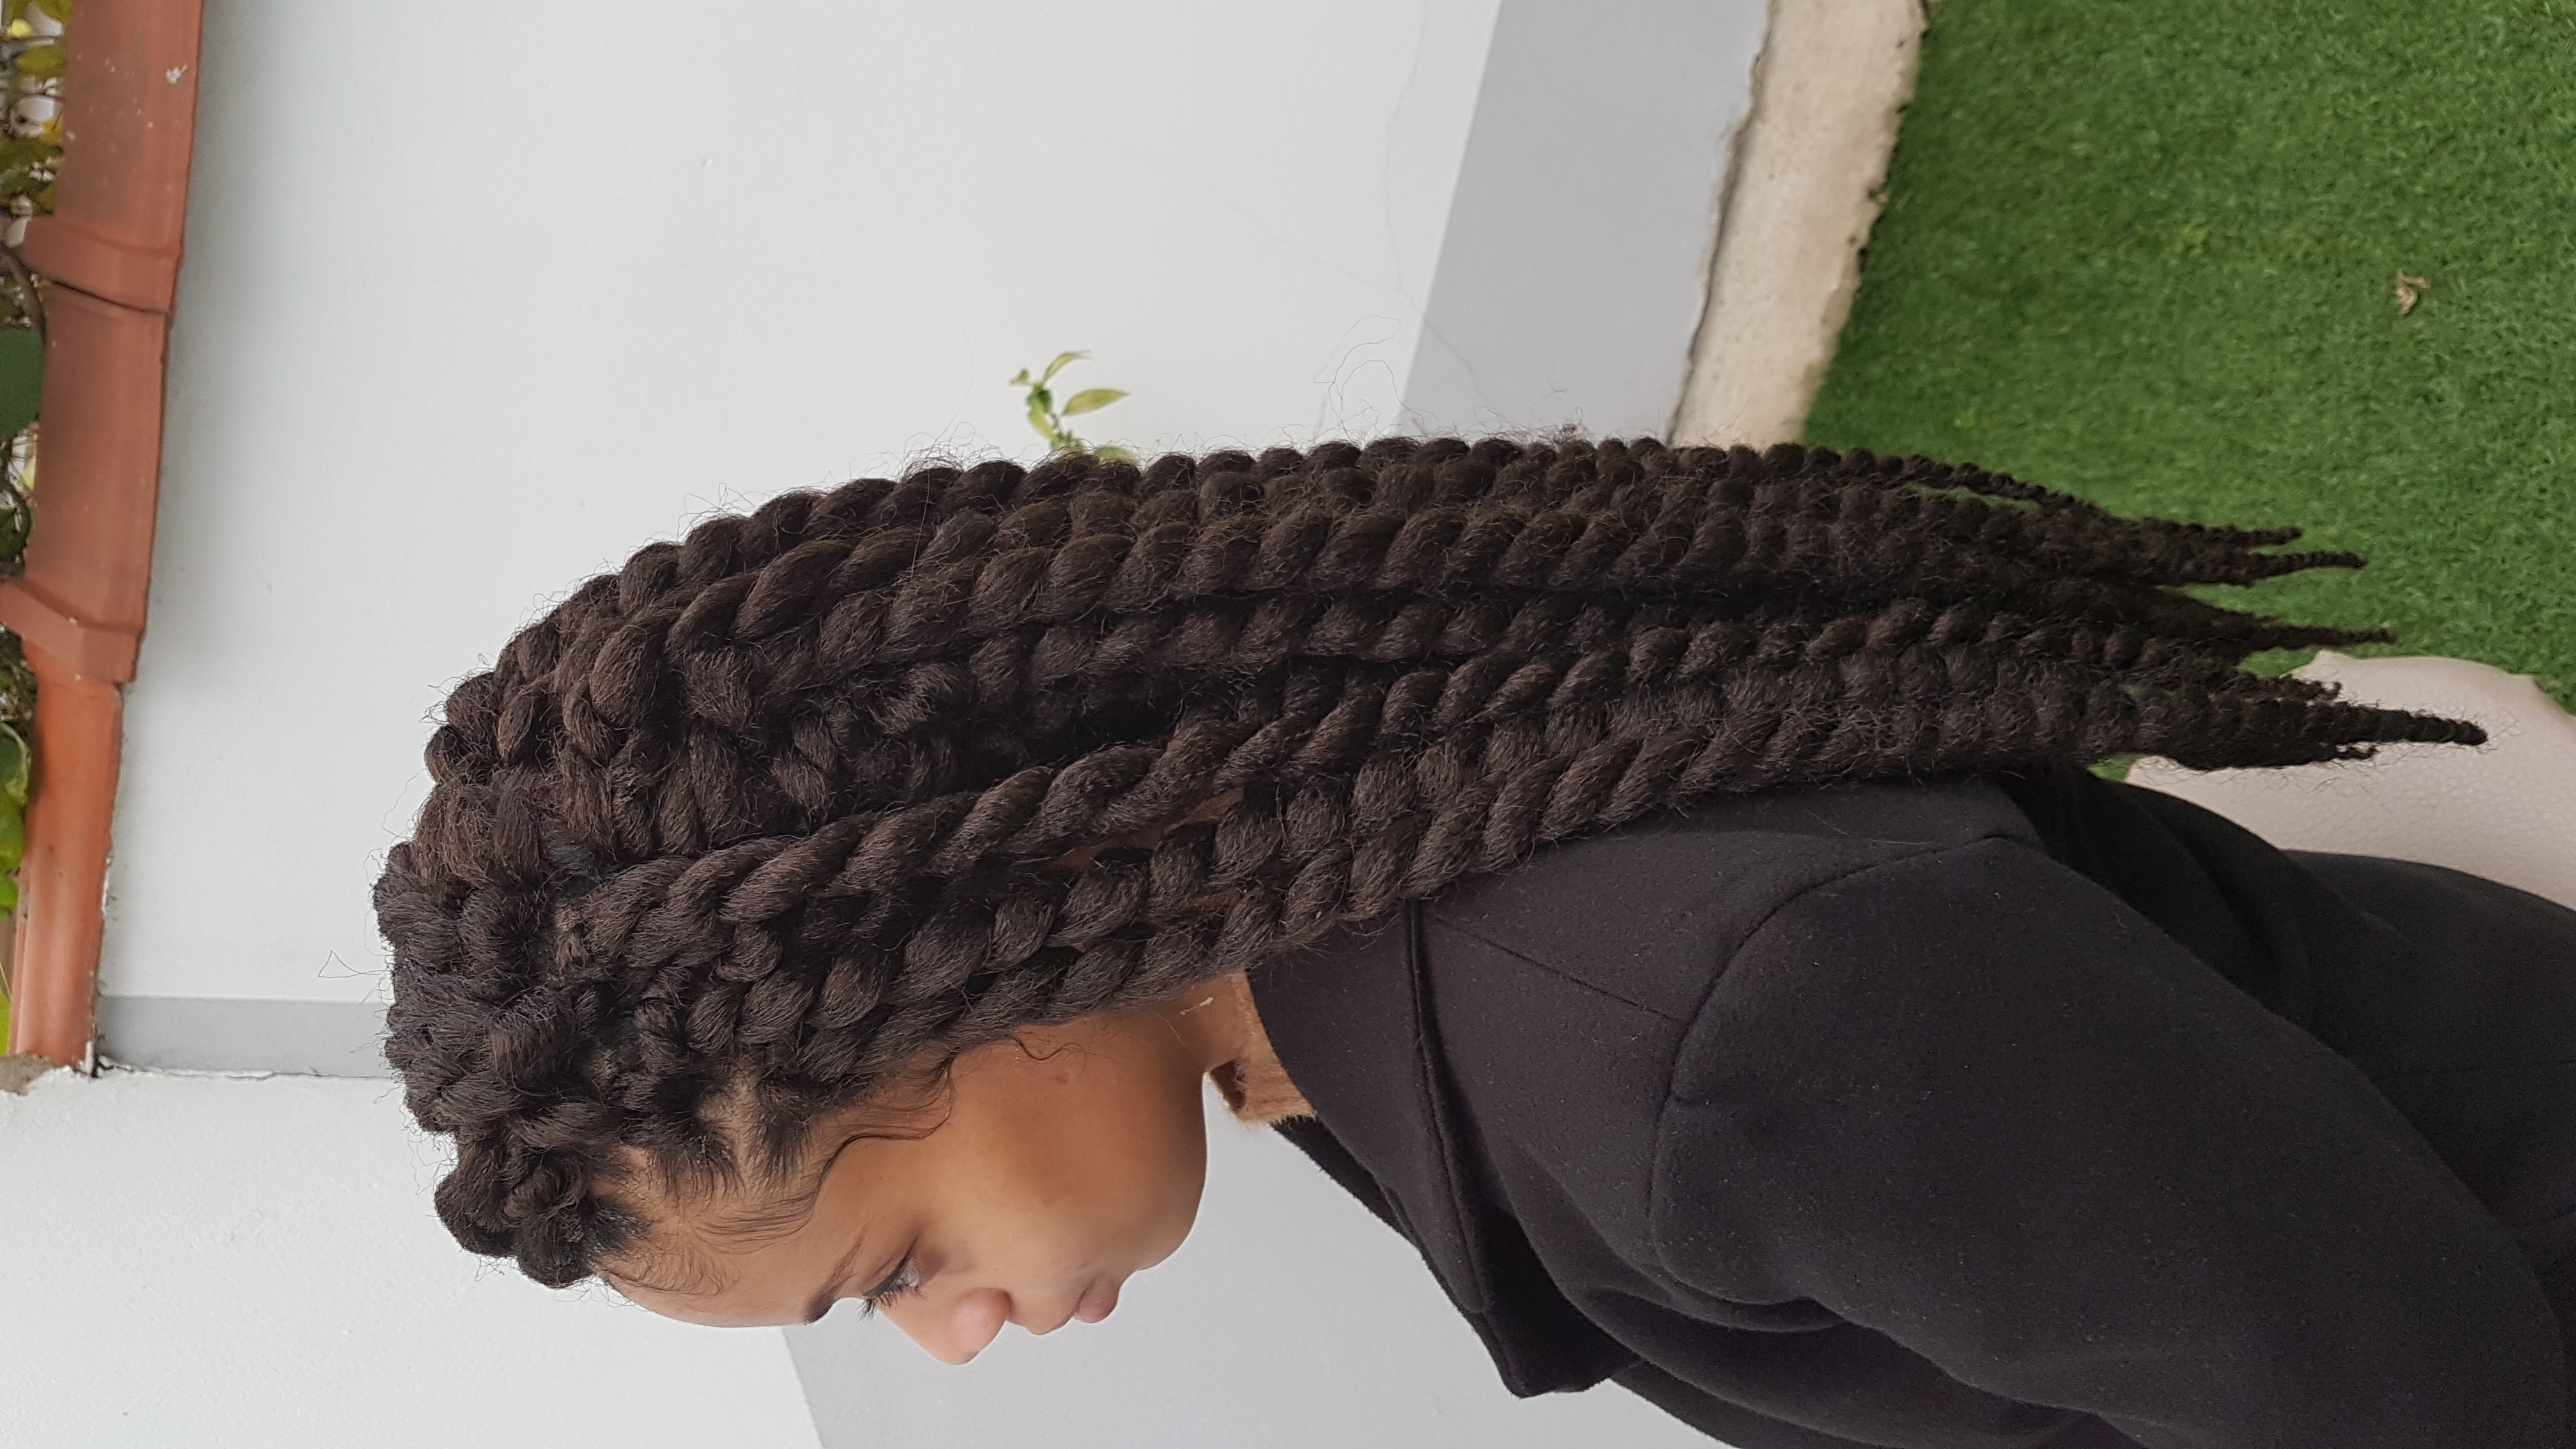 salon de coiffure afro tresse tresses box braids crochet braids vanilles tissages paris 75 77 78 91 92 93 94 95 KFPIWMXQ